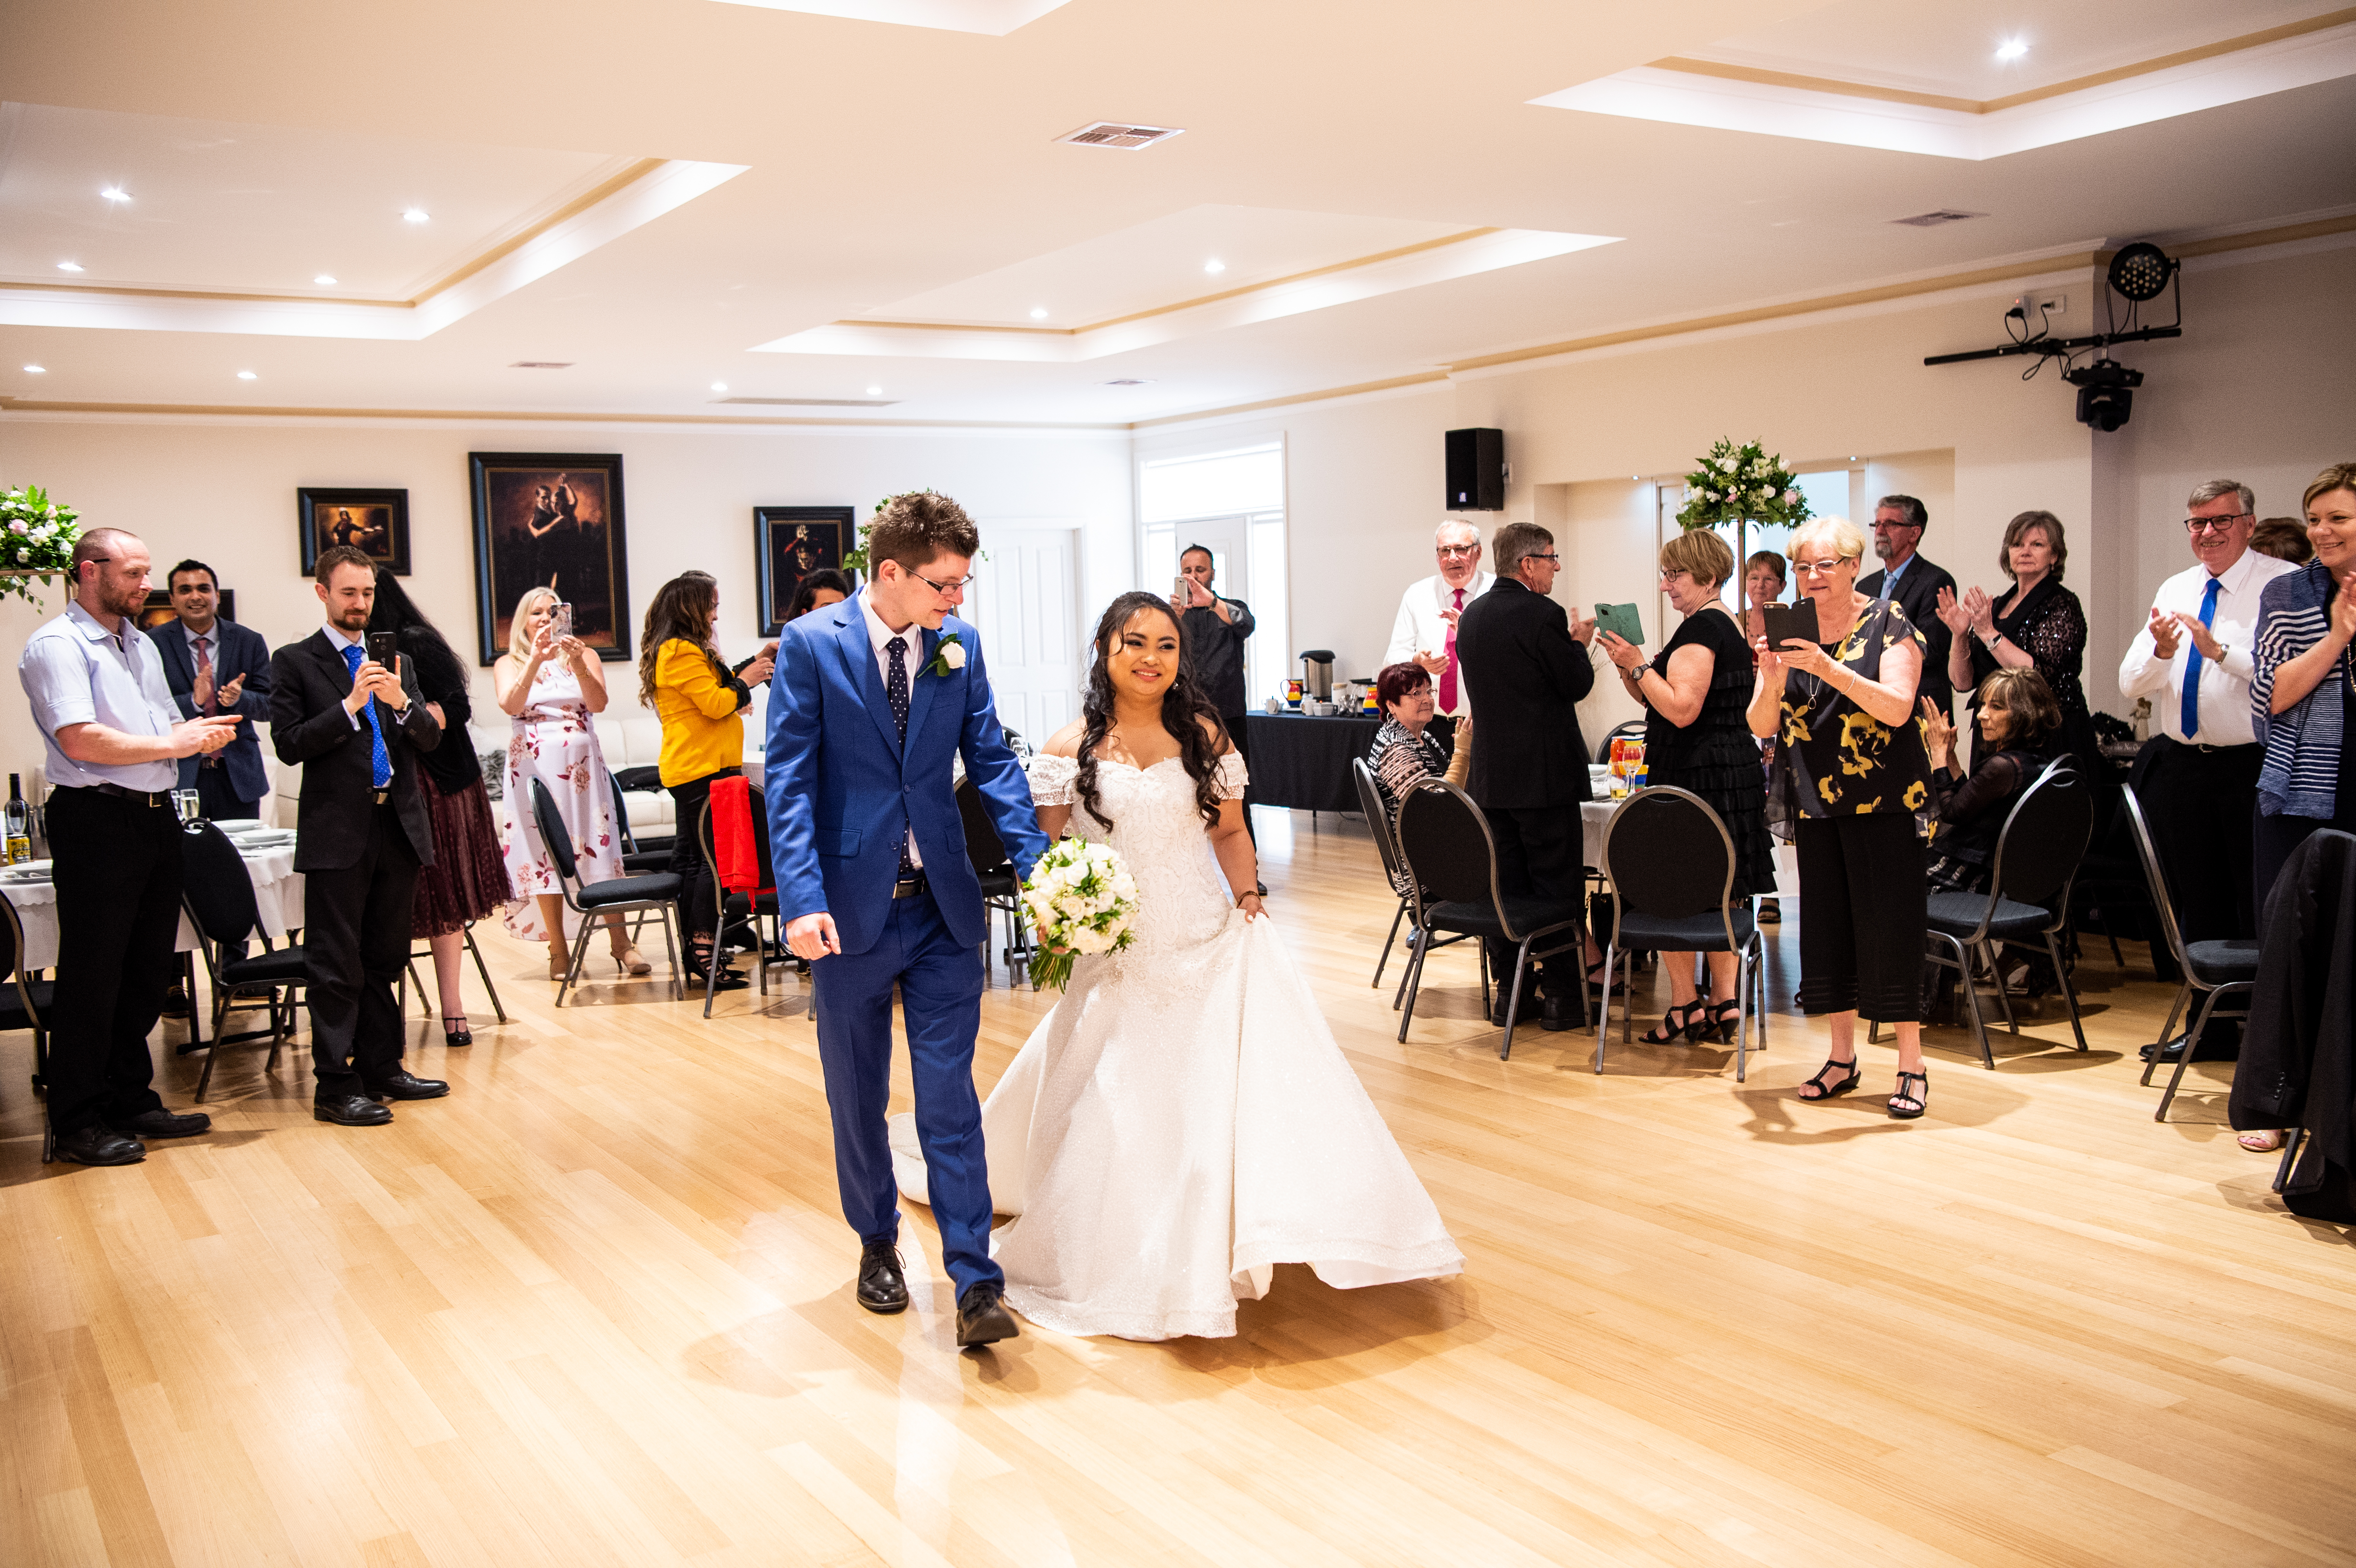 Wedding Entertainment Melbourne Upbeat Entrance Song Suggestions